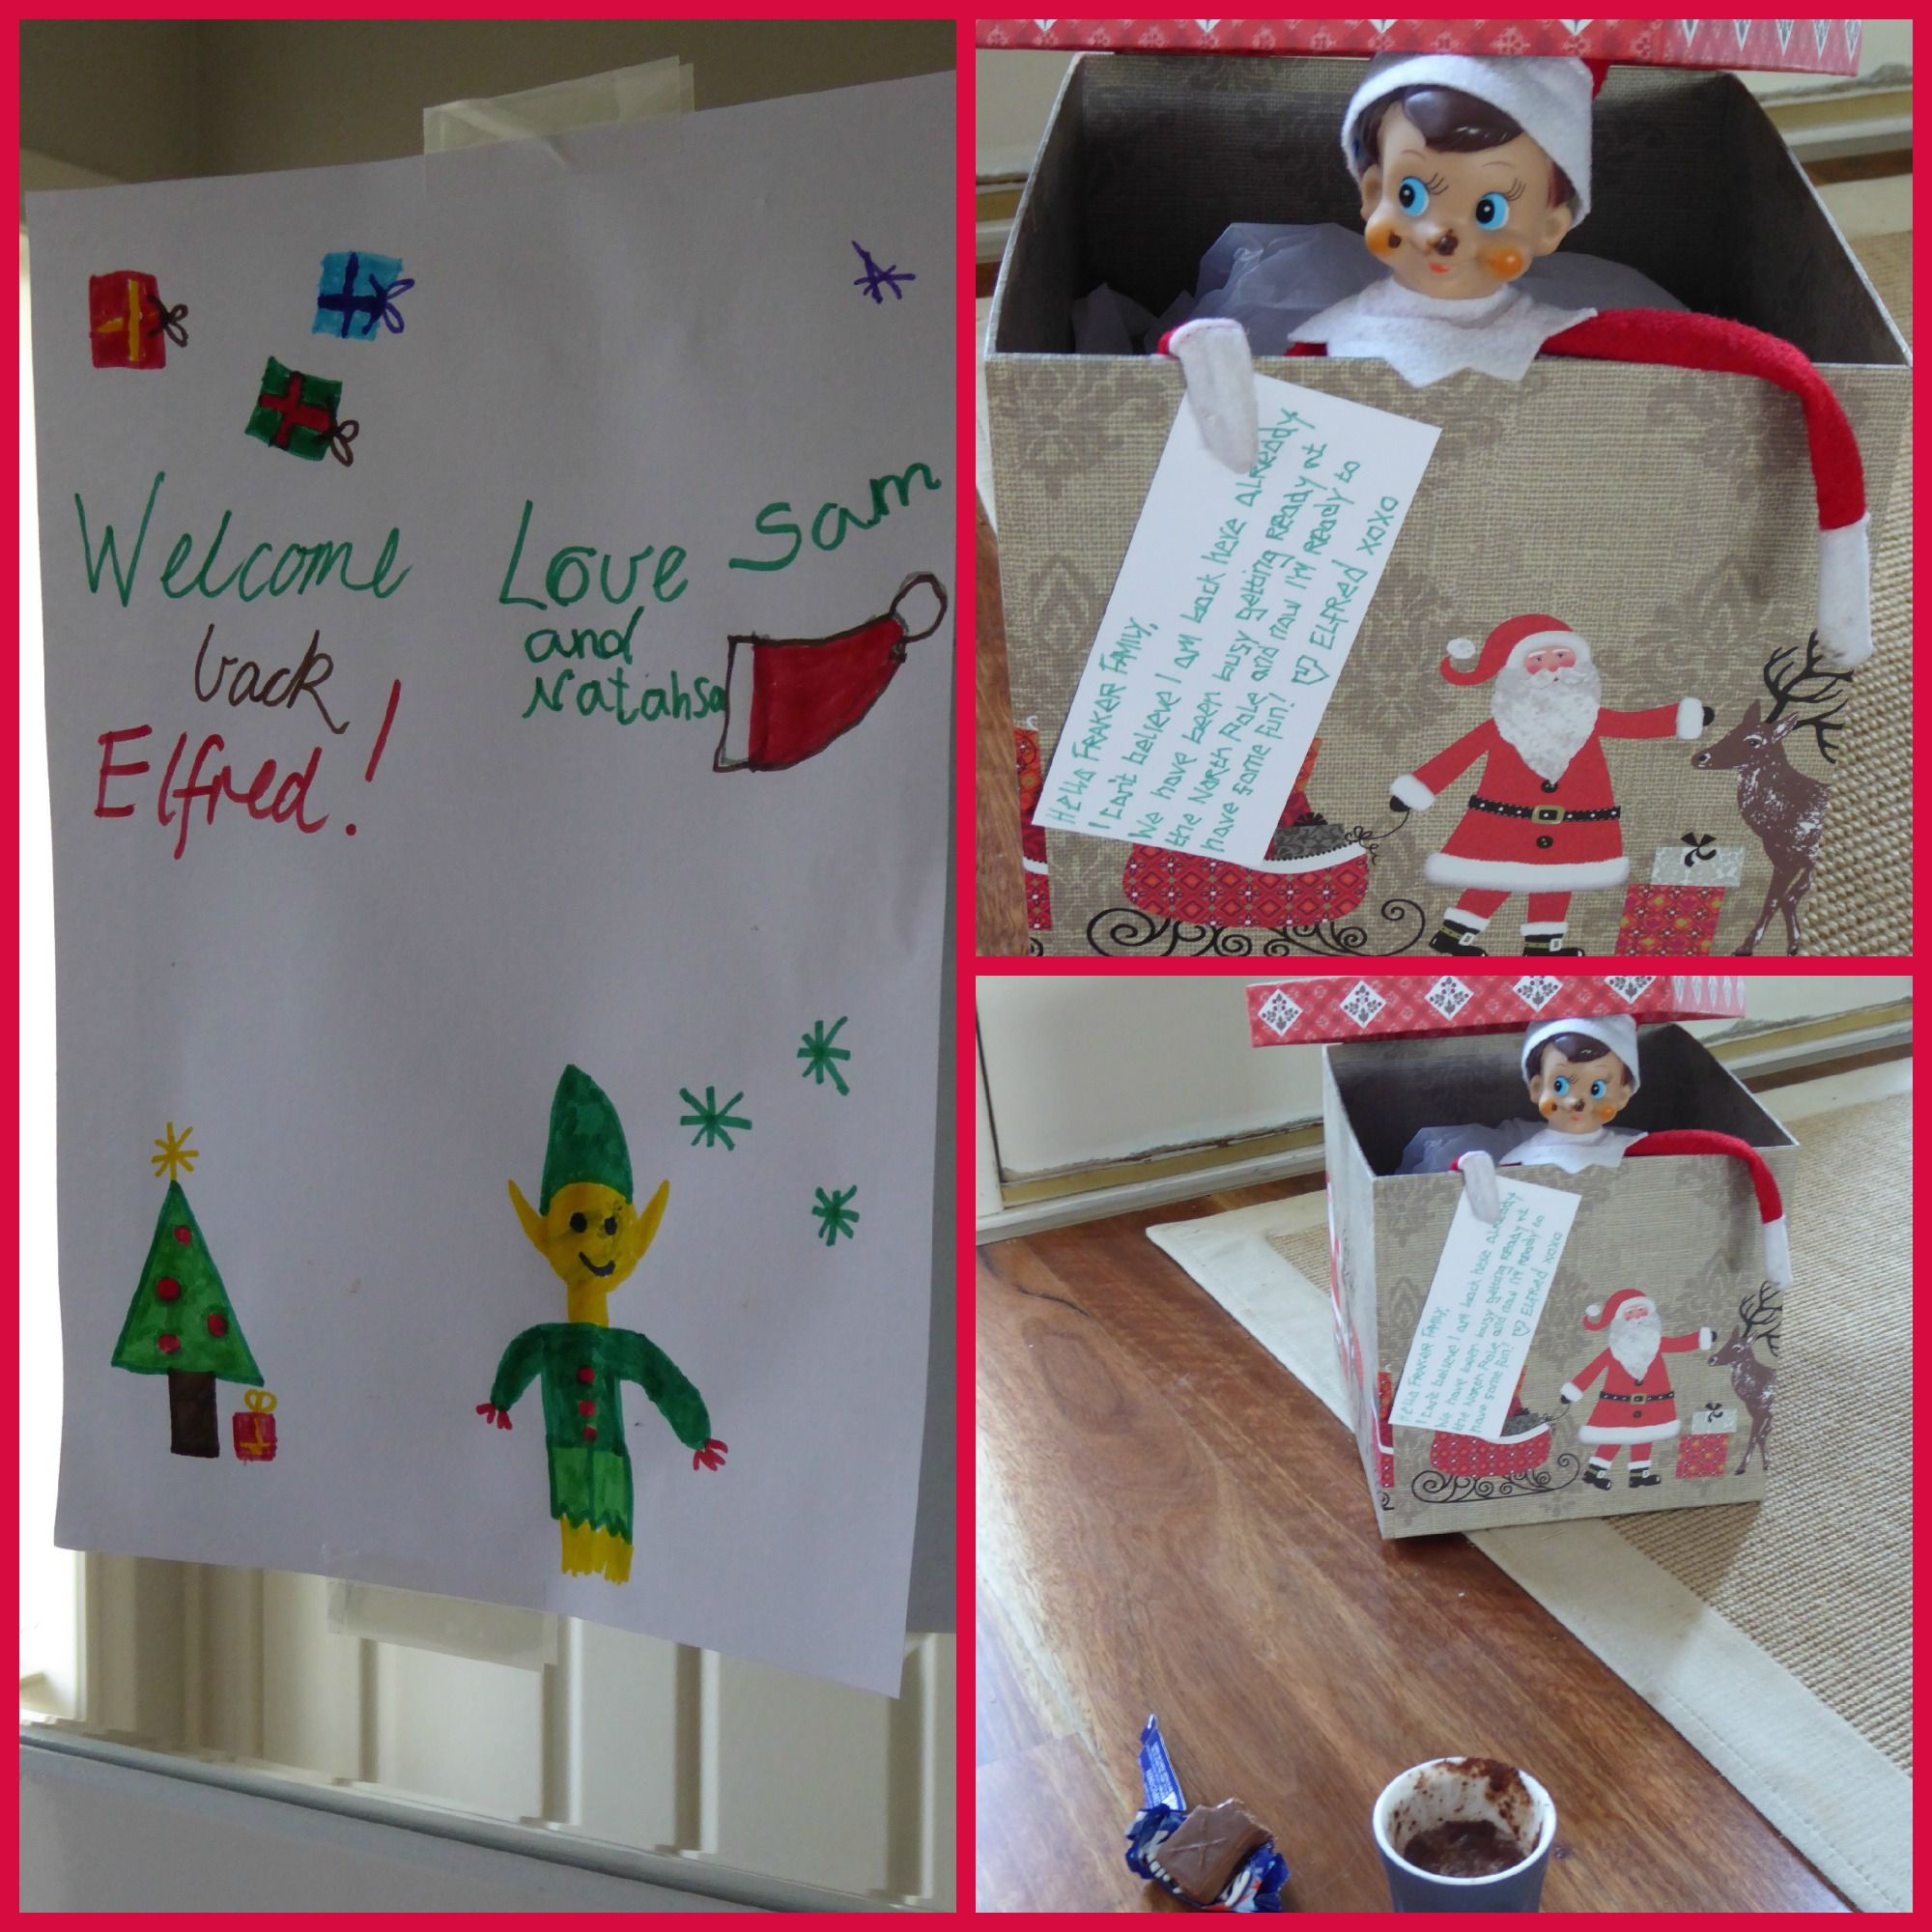 Elf on the shelf - day 1: arrival. The kids made a welcome sign & left out milo & a milky way hoping he would return. The milo on his face shows he enjoyed his welcome gift.